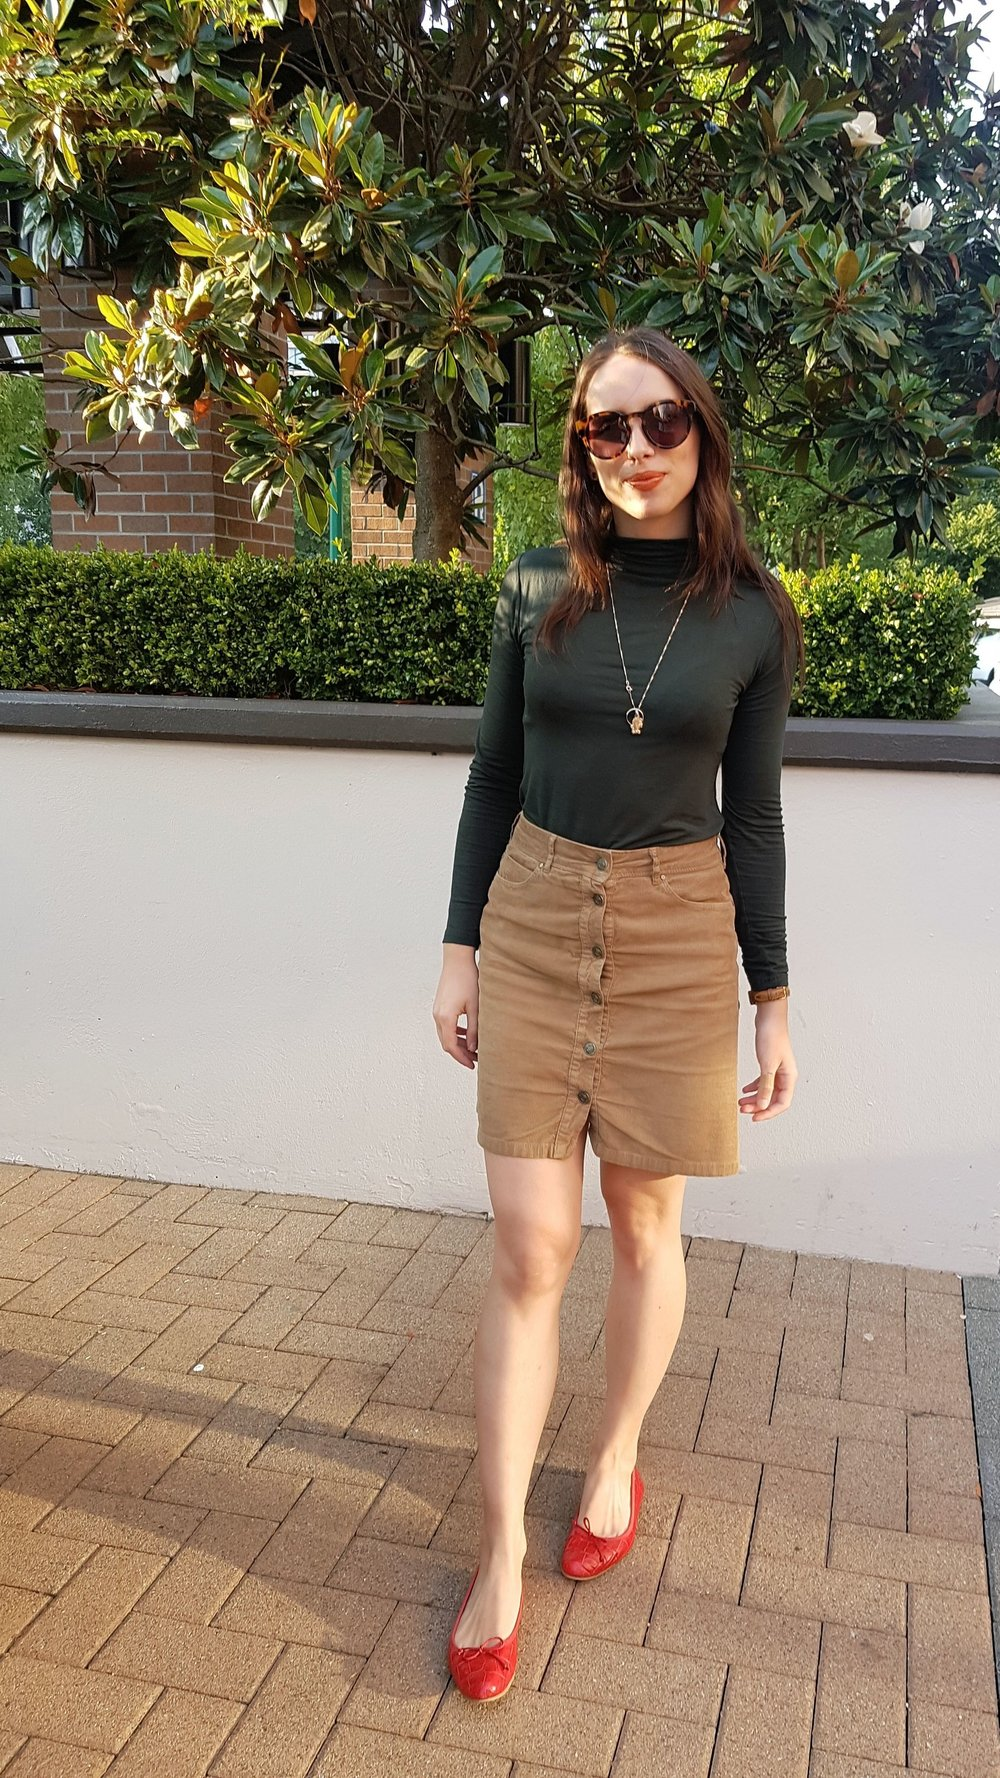 WEDNESDAY - Dynamite turtleneck, Zara corduroy skirt & flats*My fave outfit of the week!